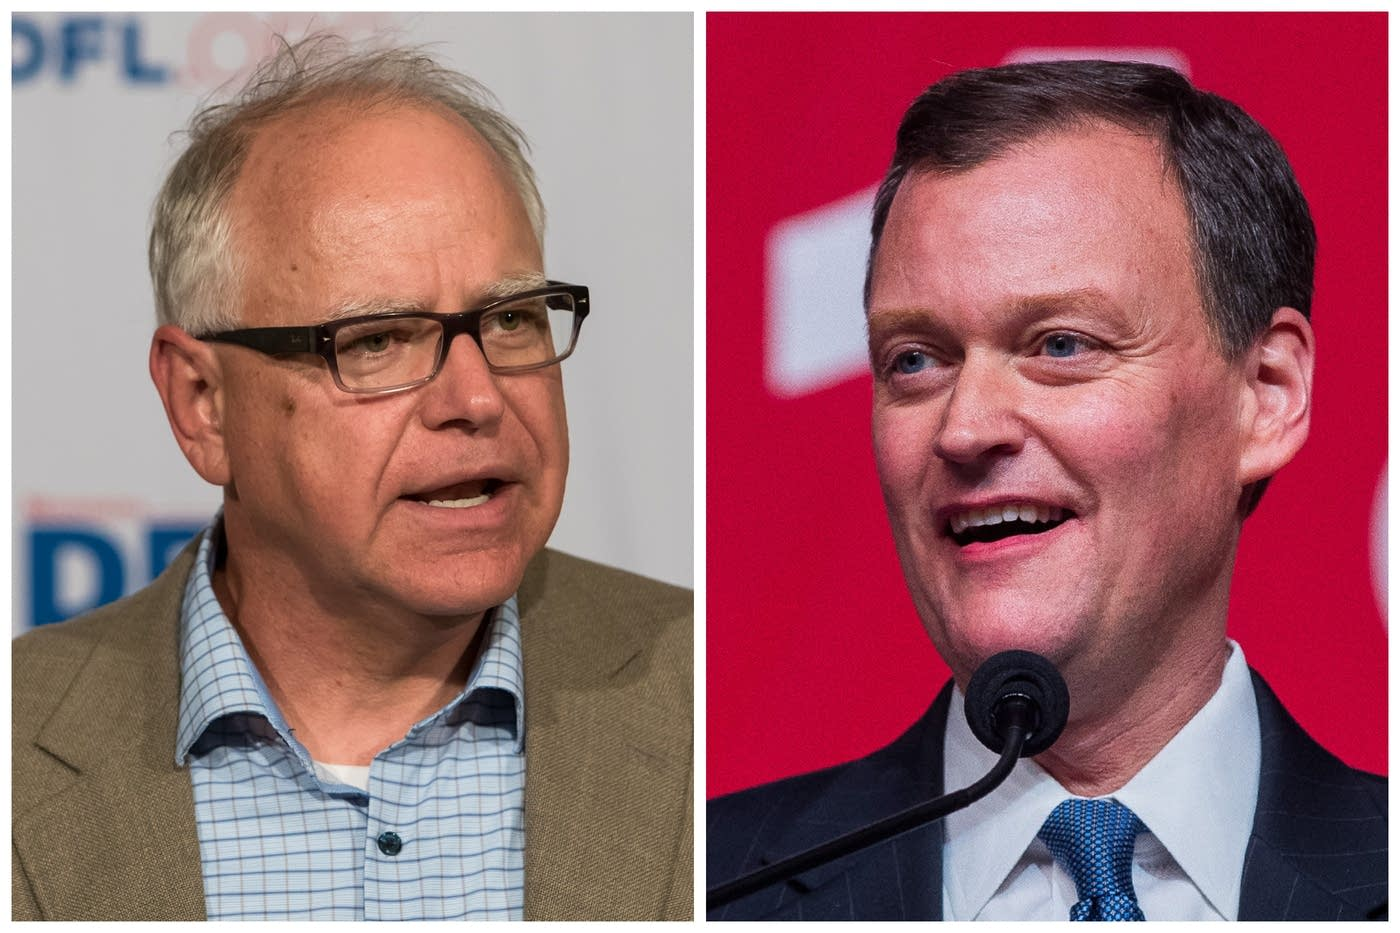 Democrat Tim Walz (left) and Republican Jeff Johnson (right) are both vying to replace Democrat Mark Dayton as Minnesota's next governor.   Photo: Lacey Young | MPR News (l) and Derek Montgomery for MPR News.